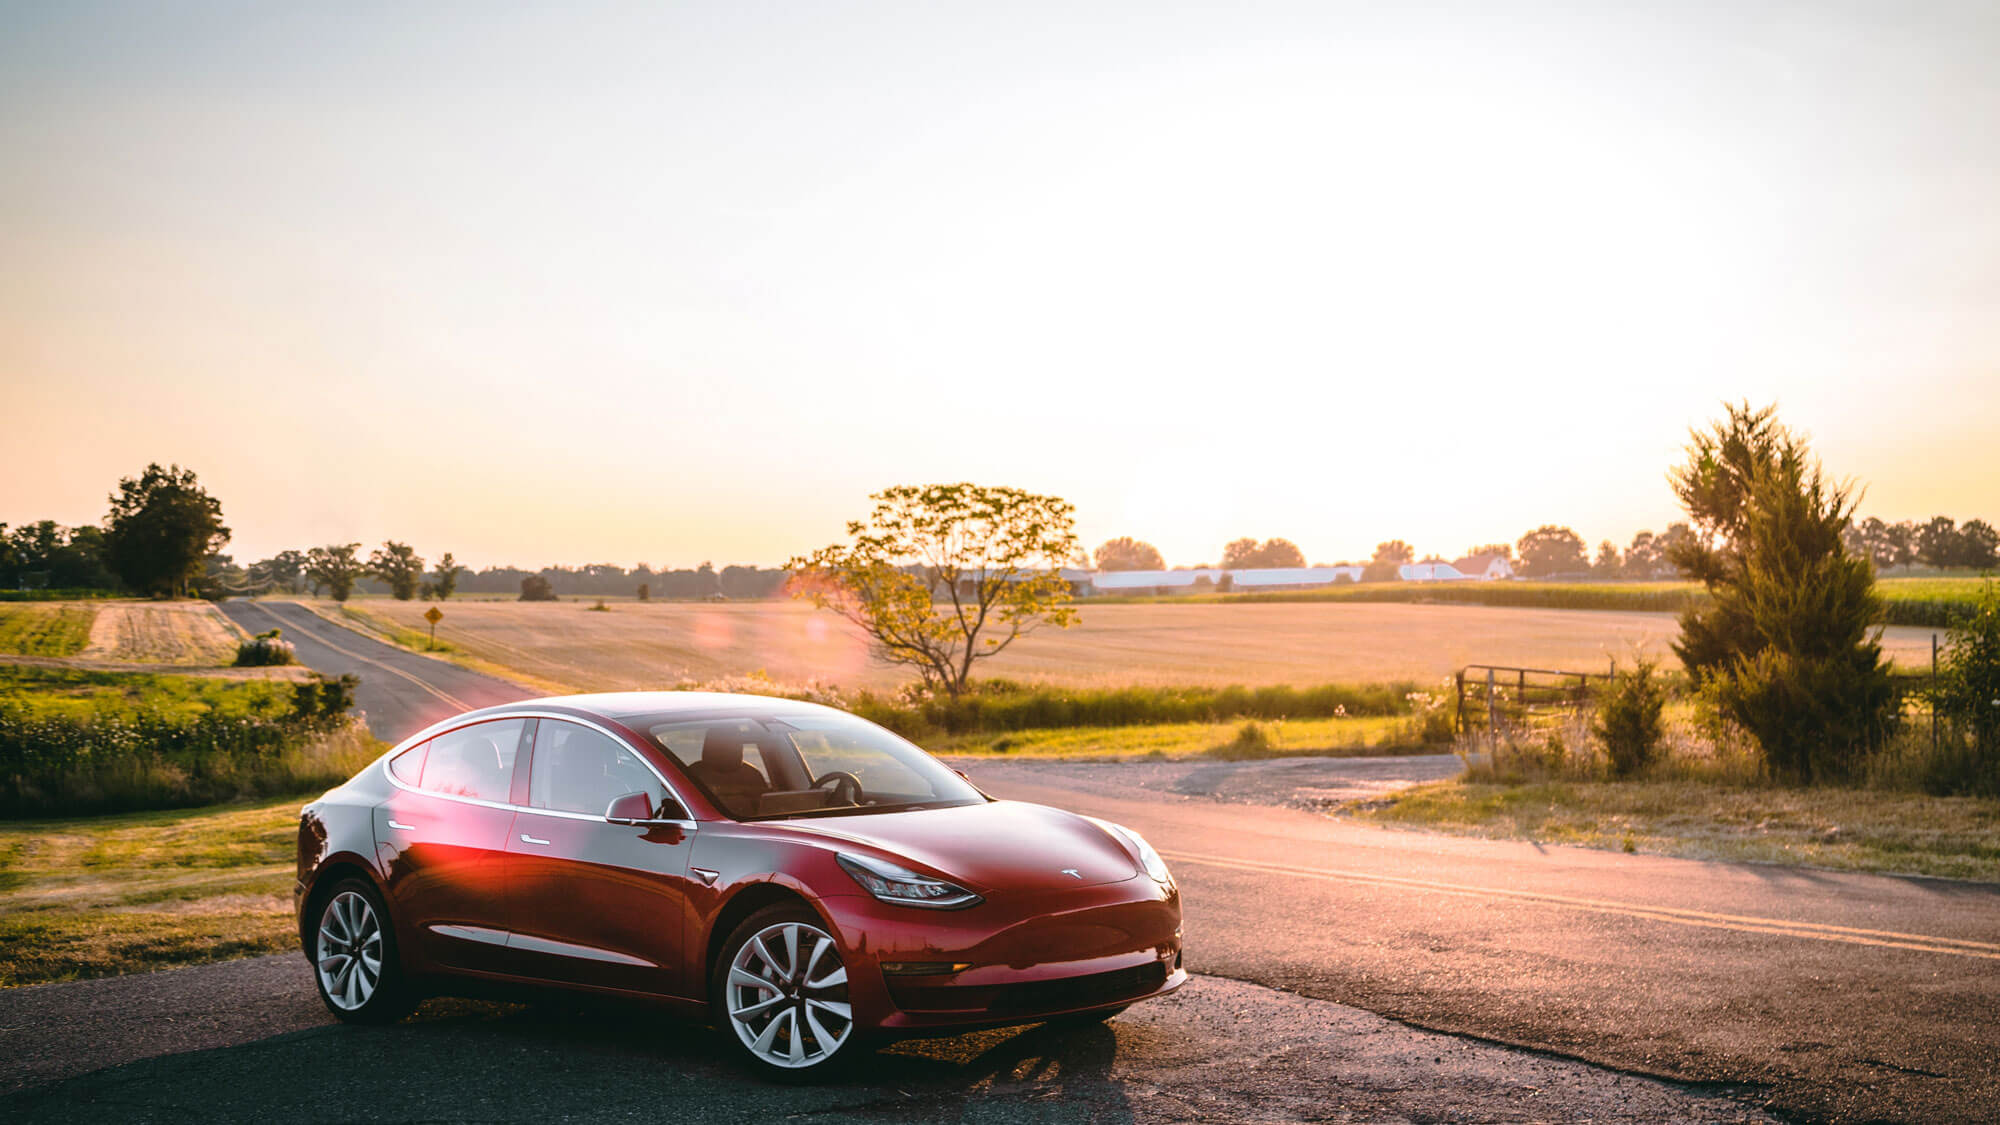 Tesla is an example of breakthrough innovation